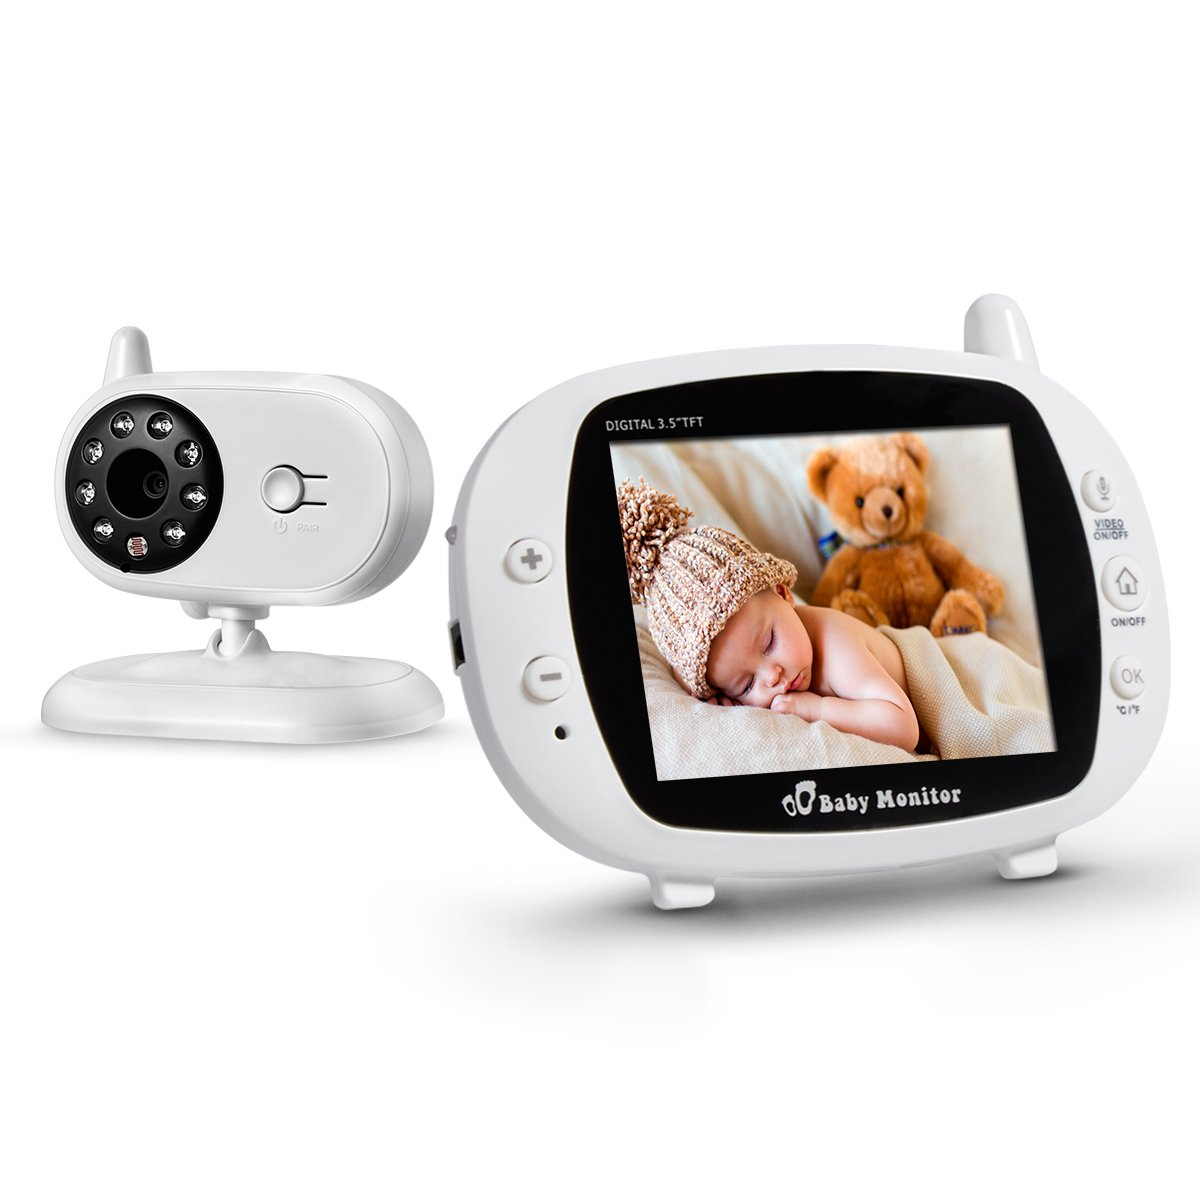 "FirstPower Video Baby Monitor with Camera, Infrared Night Vision, Two-Way Talk Back, 3.5"" LCD Screen, Temperature Detection, Lullabies, Long Range, Private Data Protection and High Capacity 3.5"" LCD Screen"